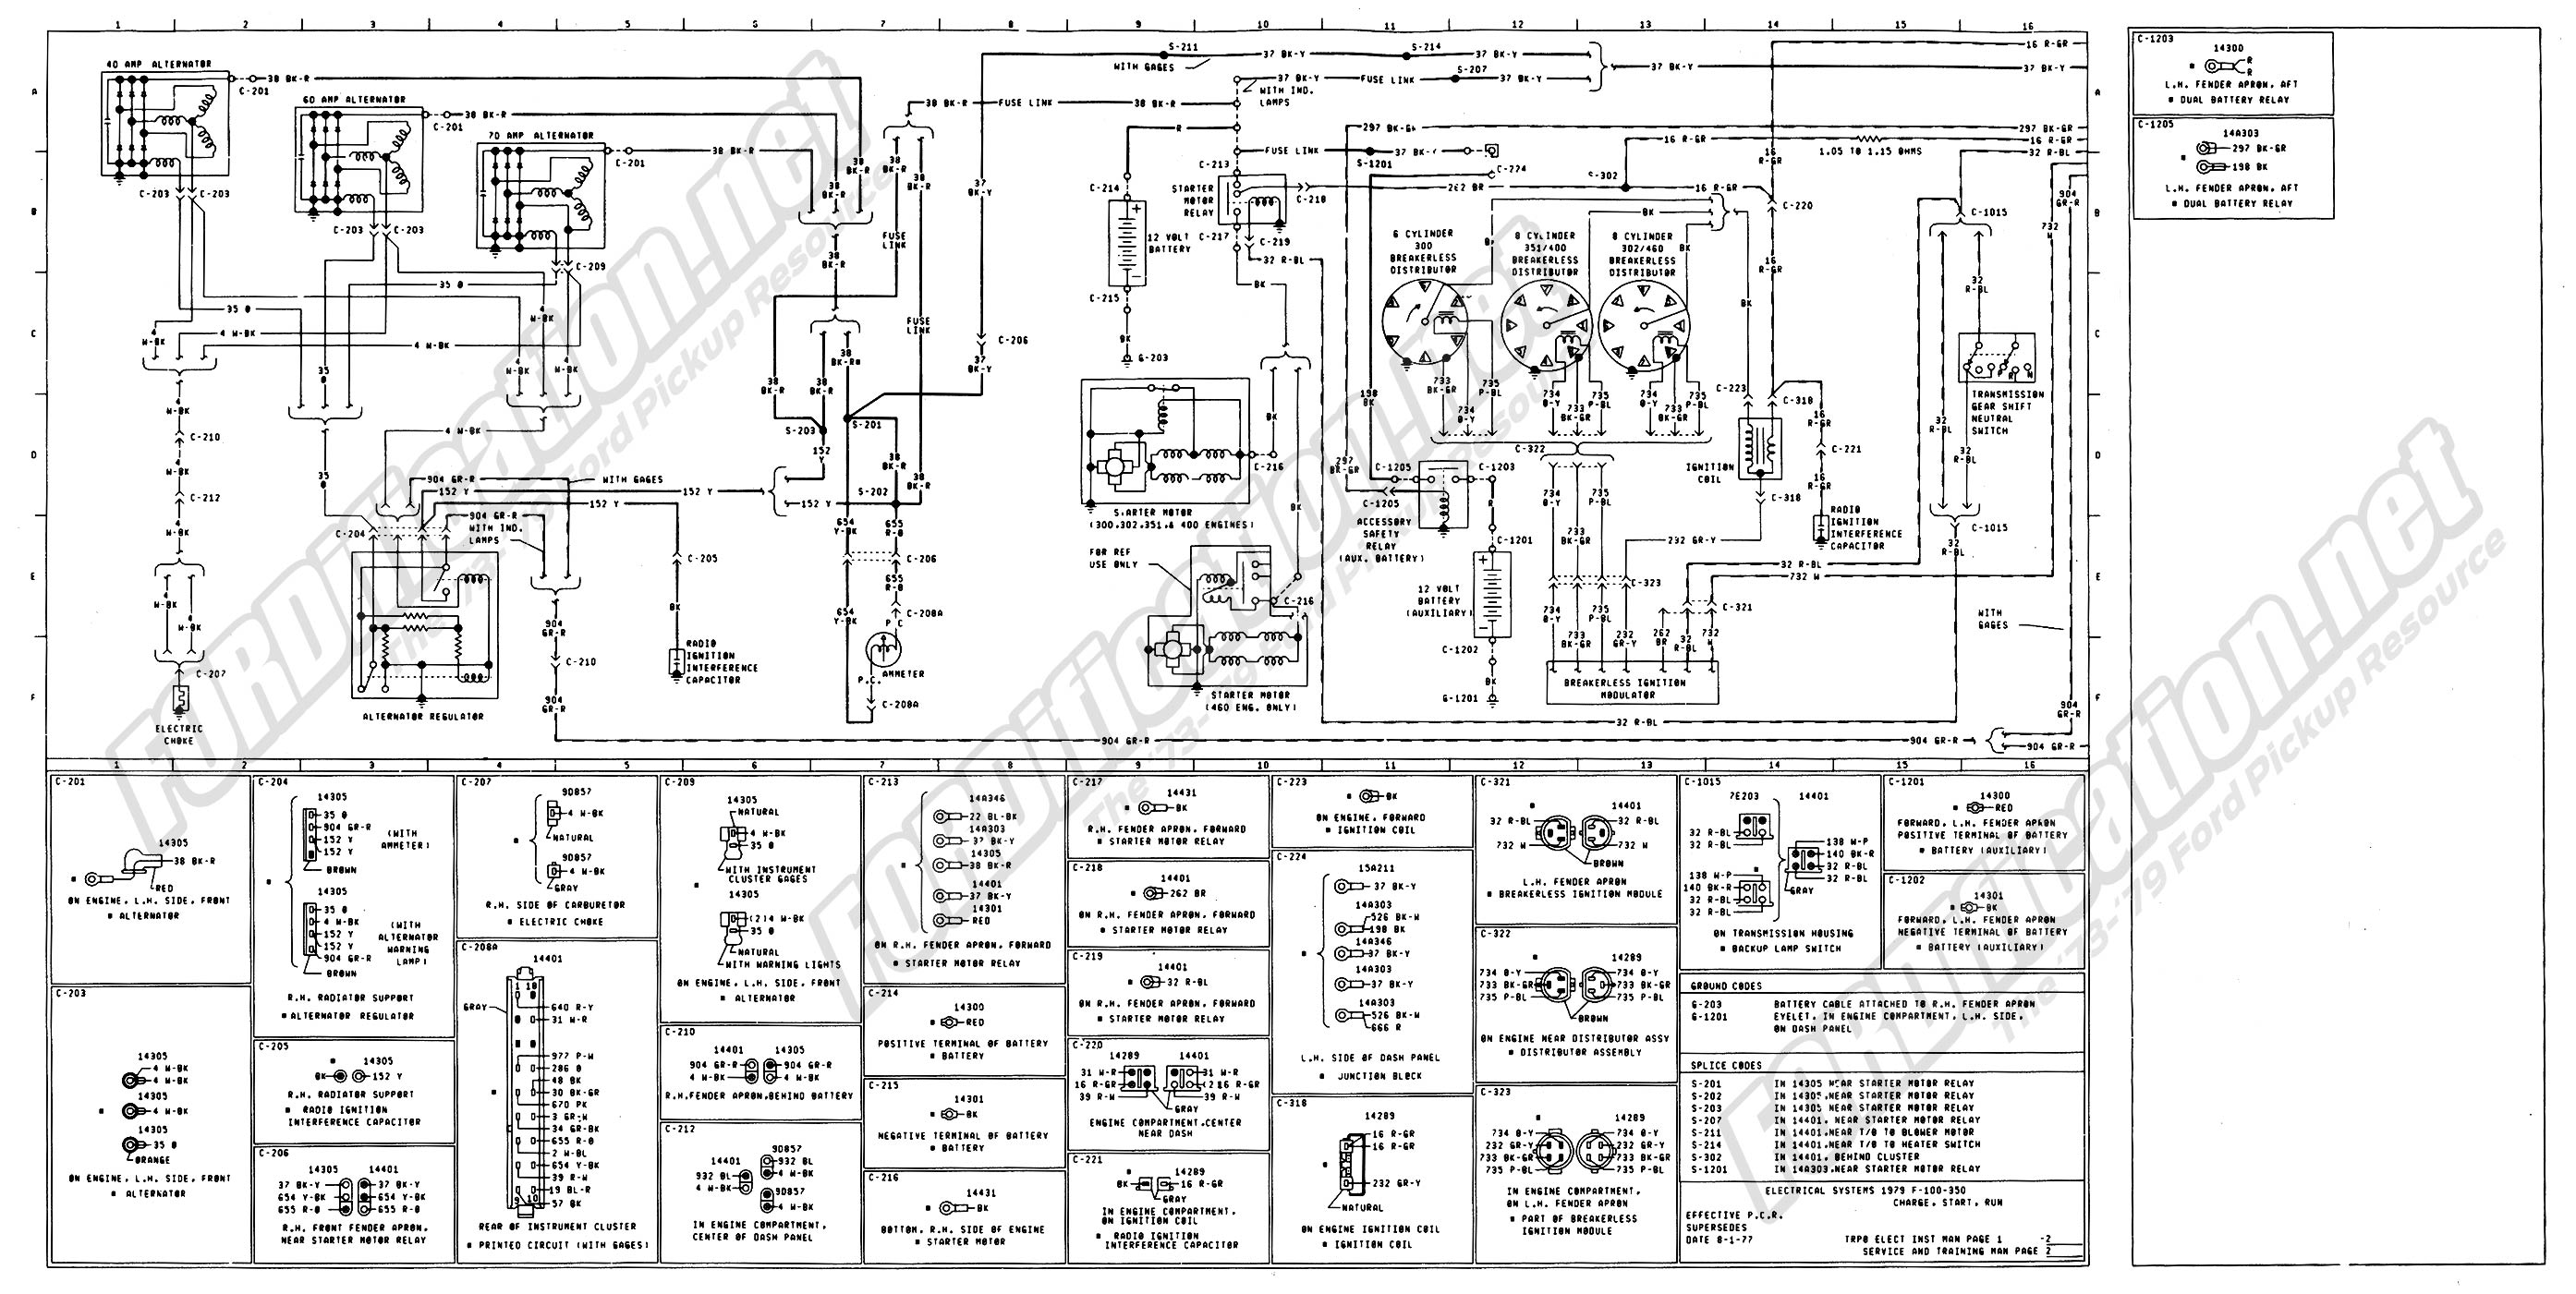 1978 ford f100 wiring diagram in color